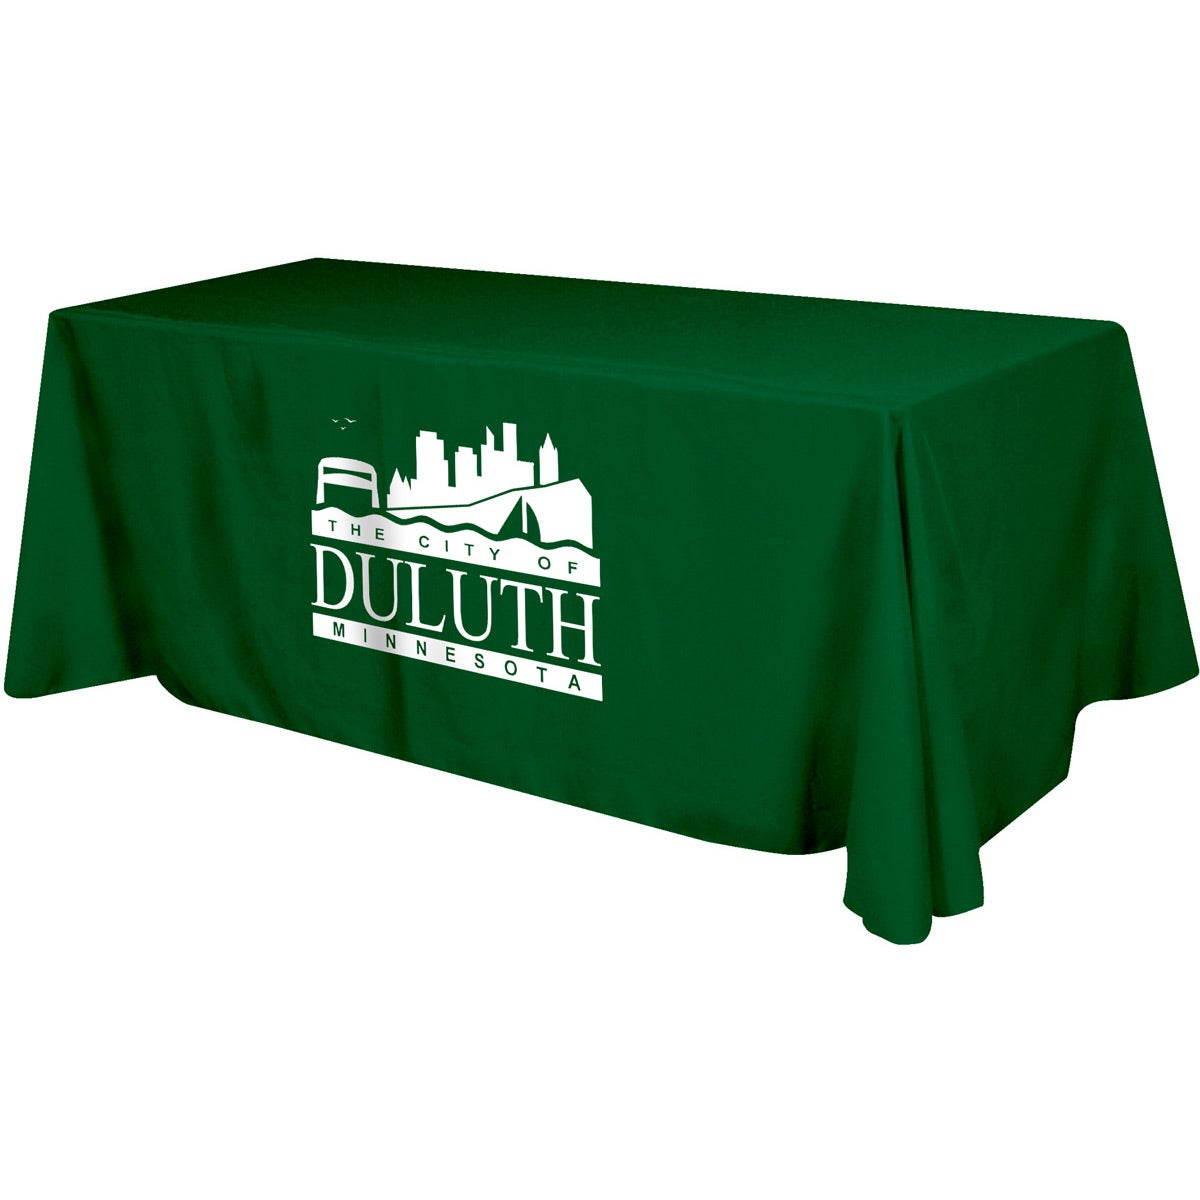 Table Cover Fits 8 Foot Standard Table (Flat 4 Sided)